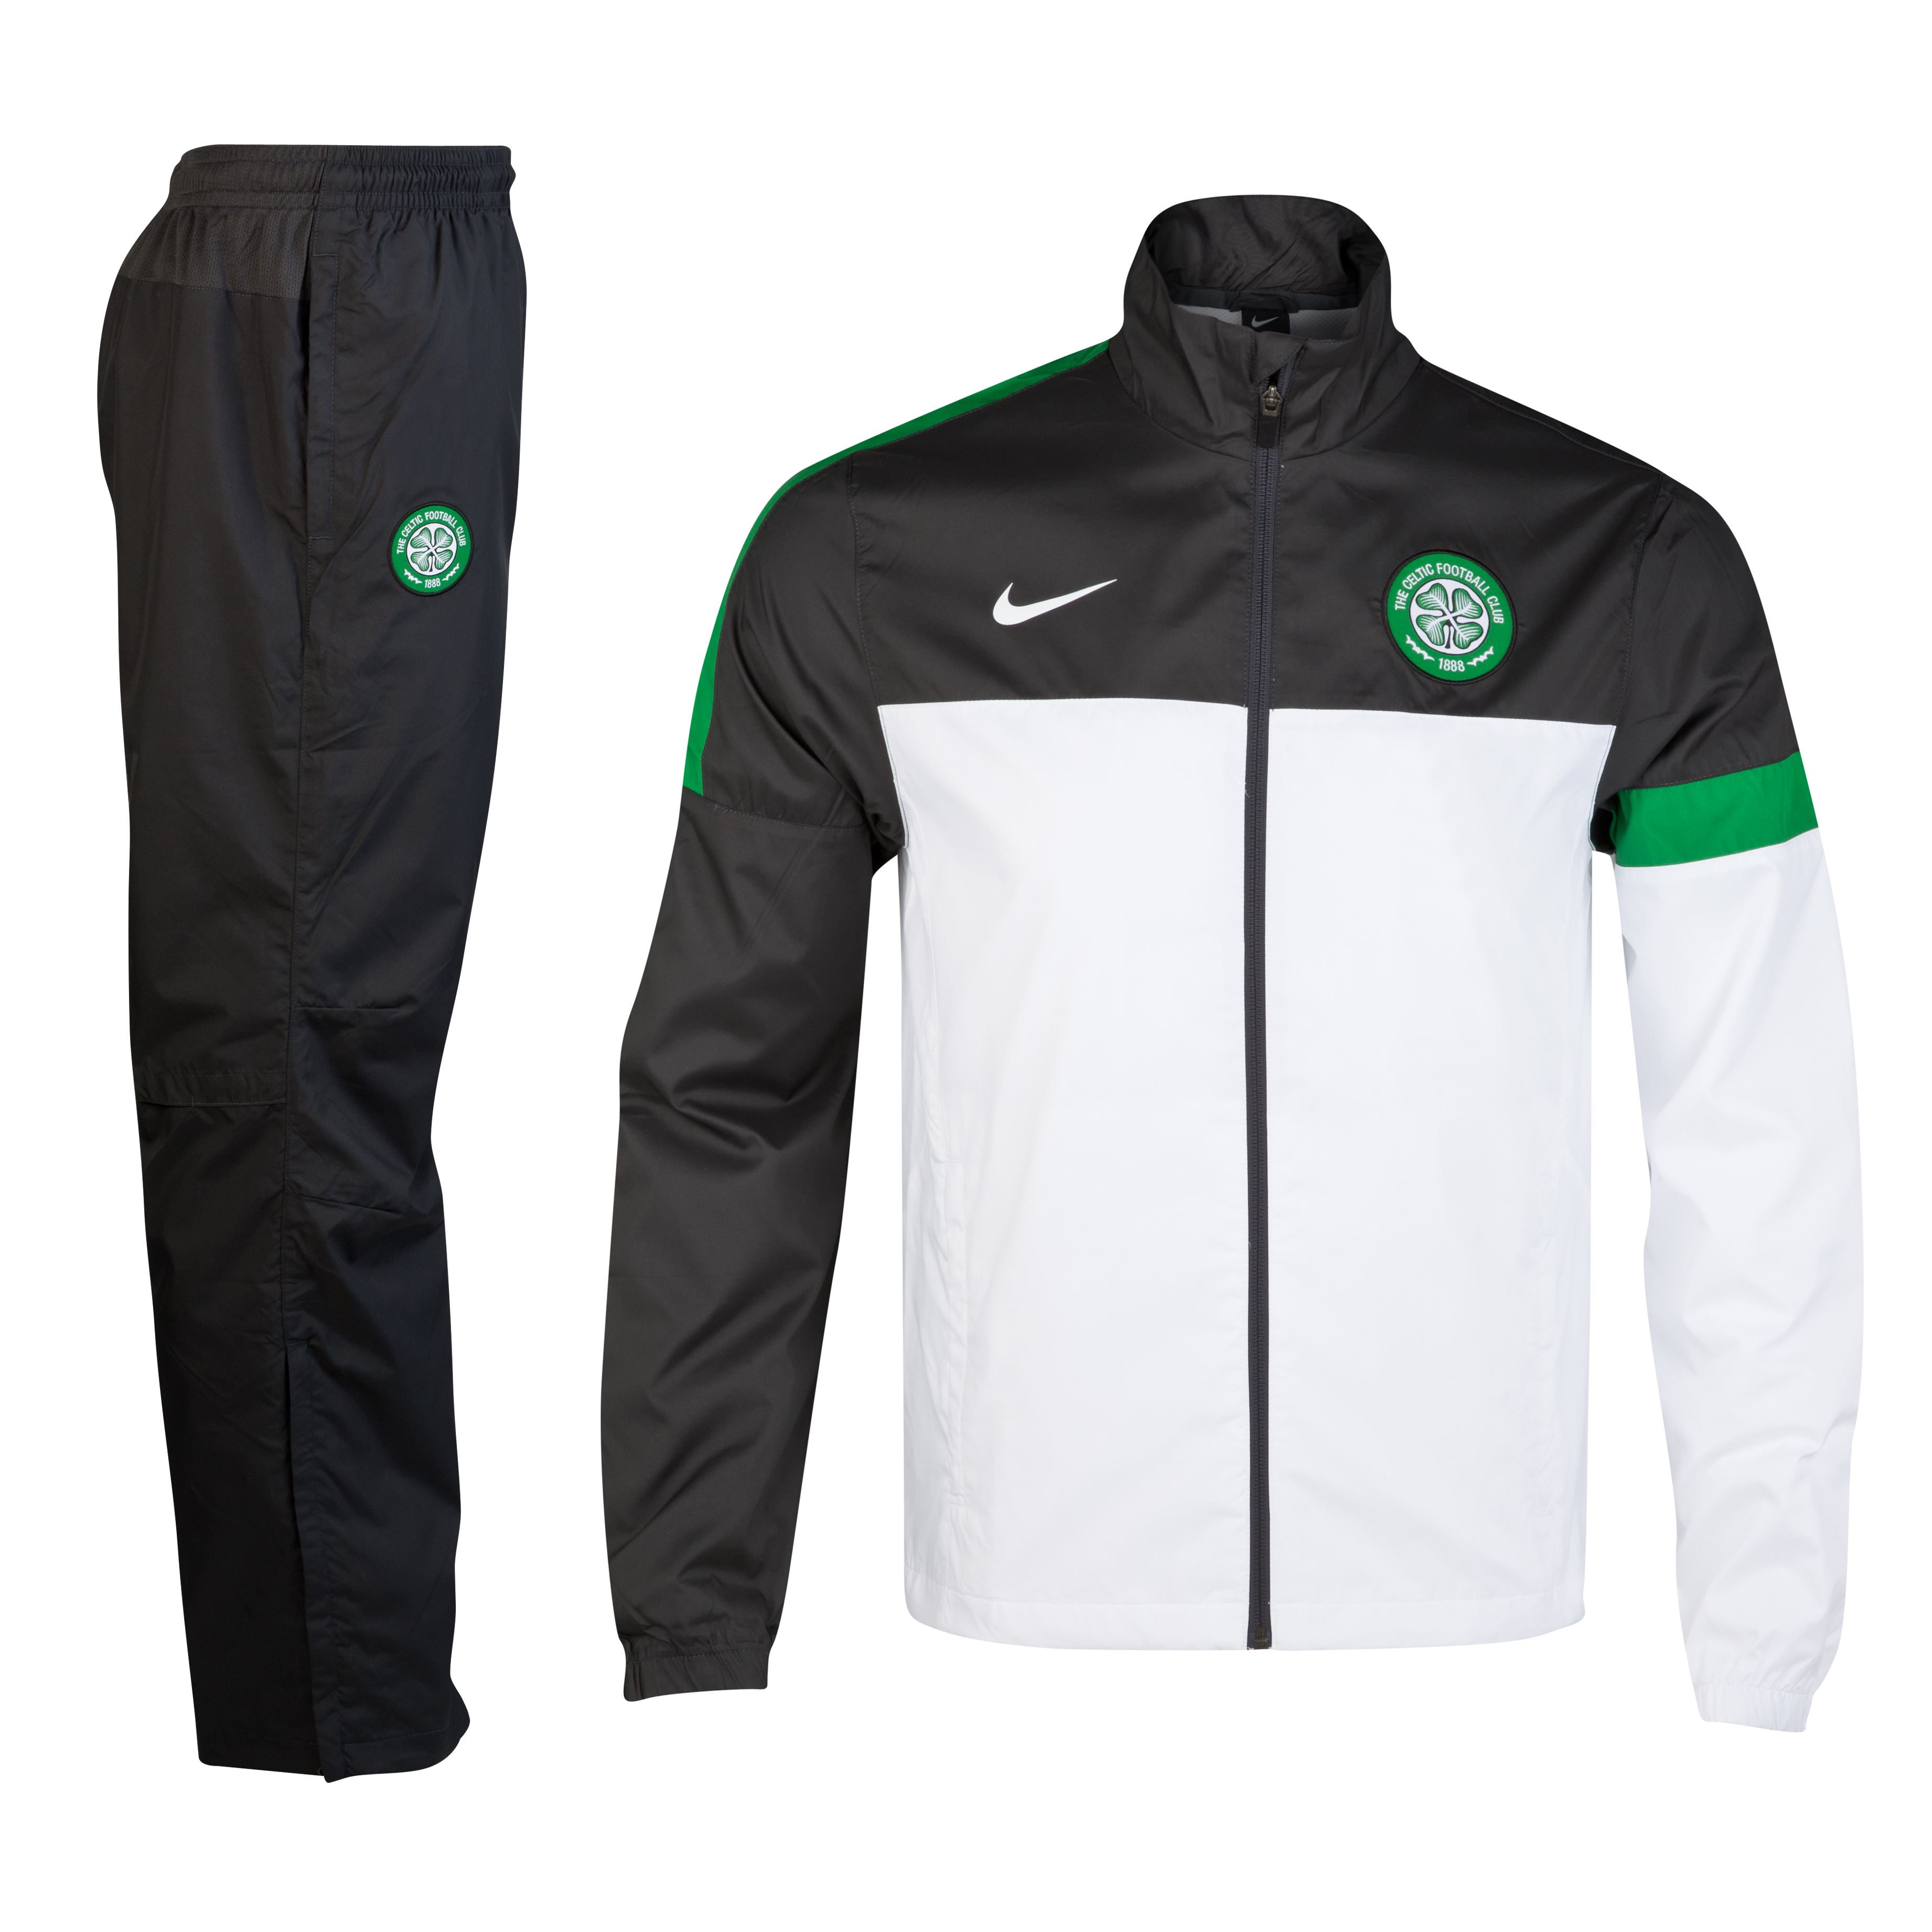 Celtic Sideline Woven Warm Up Tracksuit - White/Anthracite/Victory Green/White - Kids